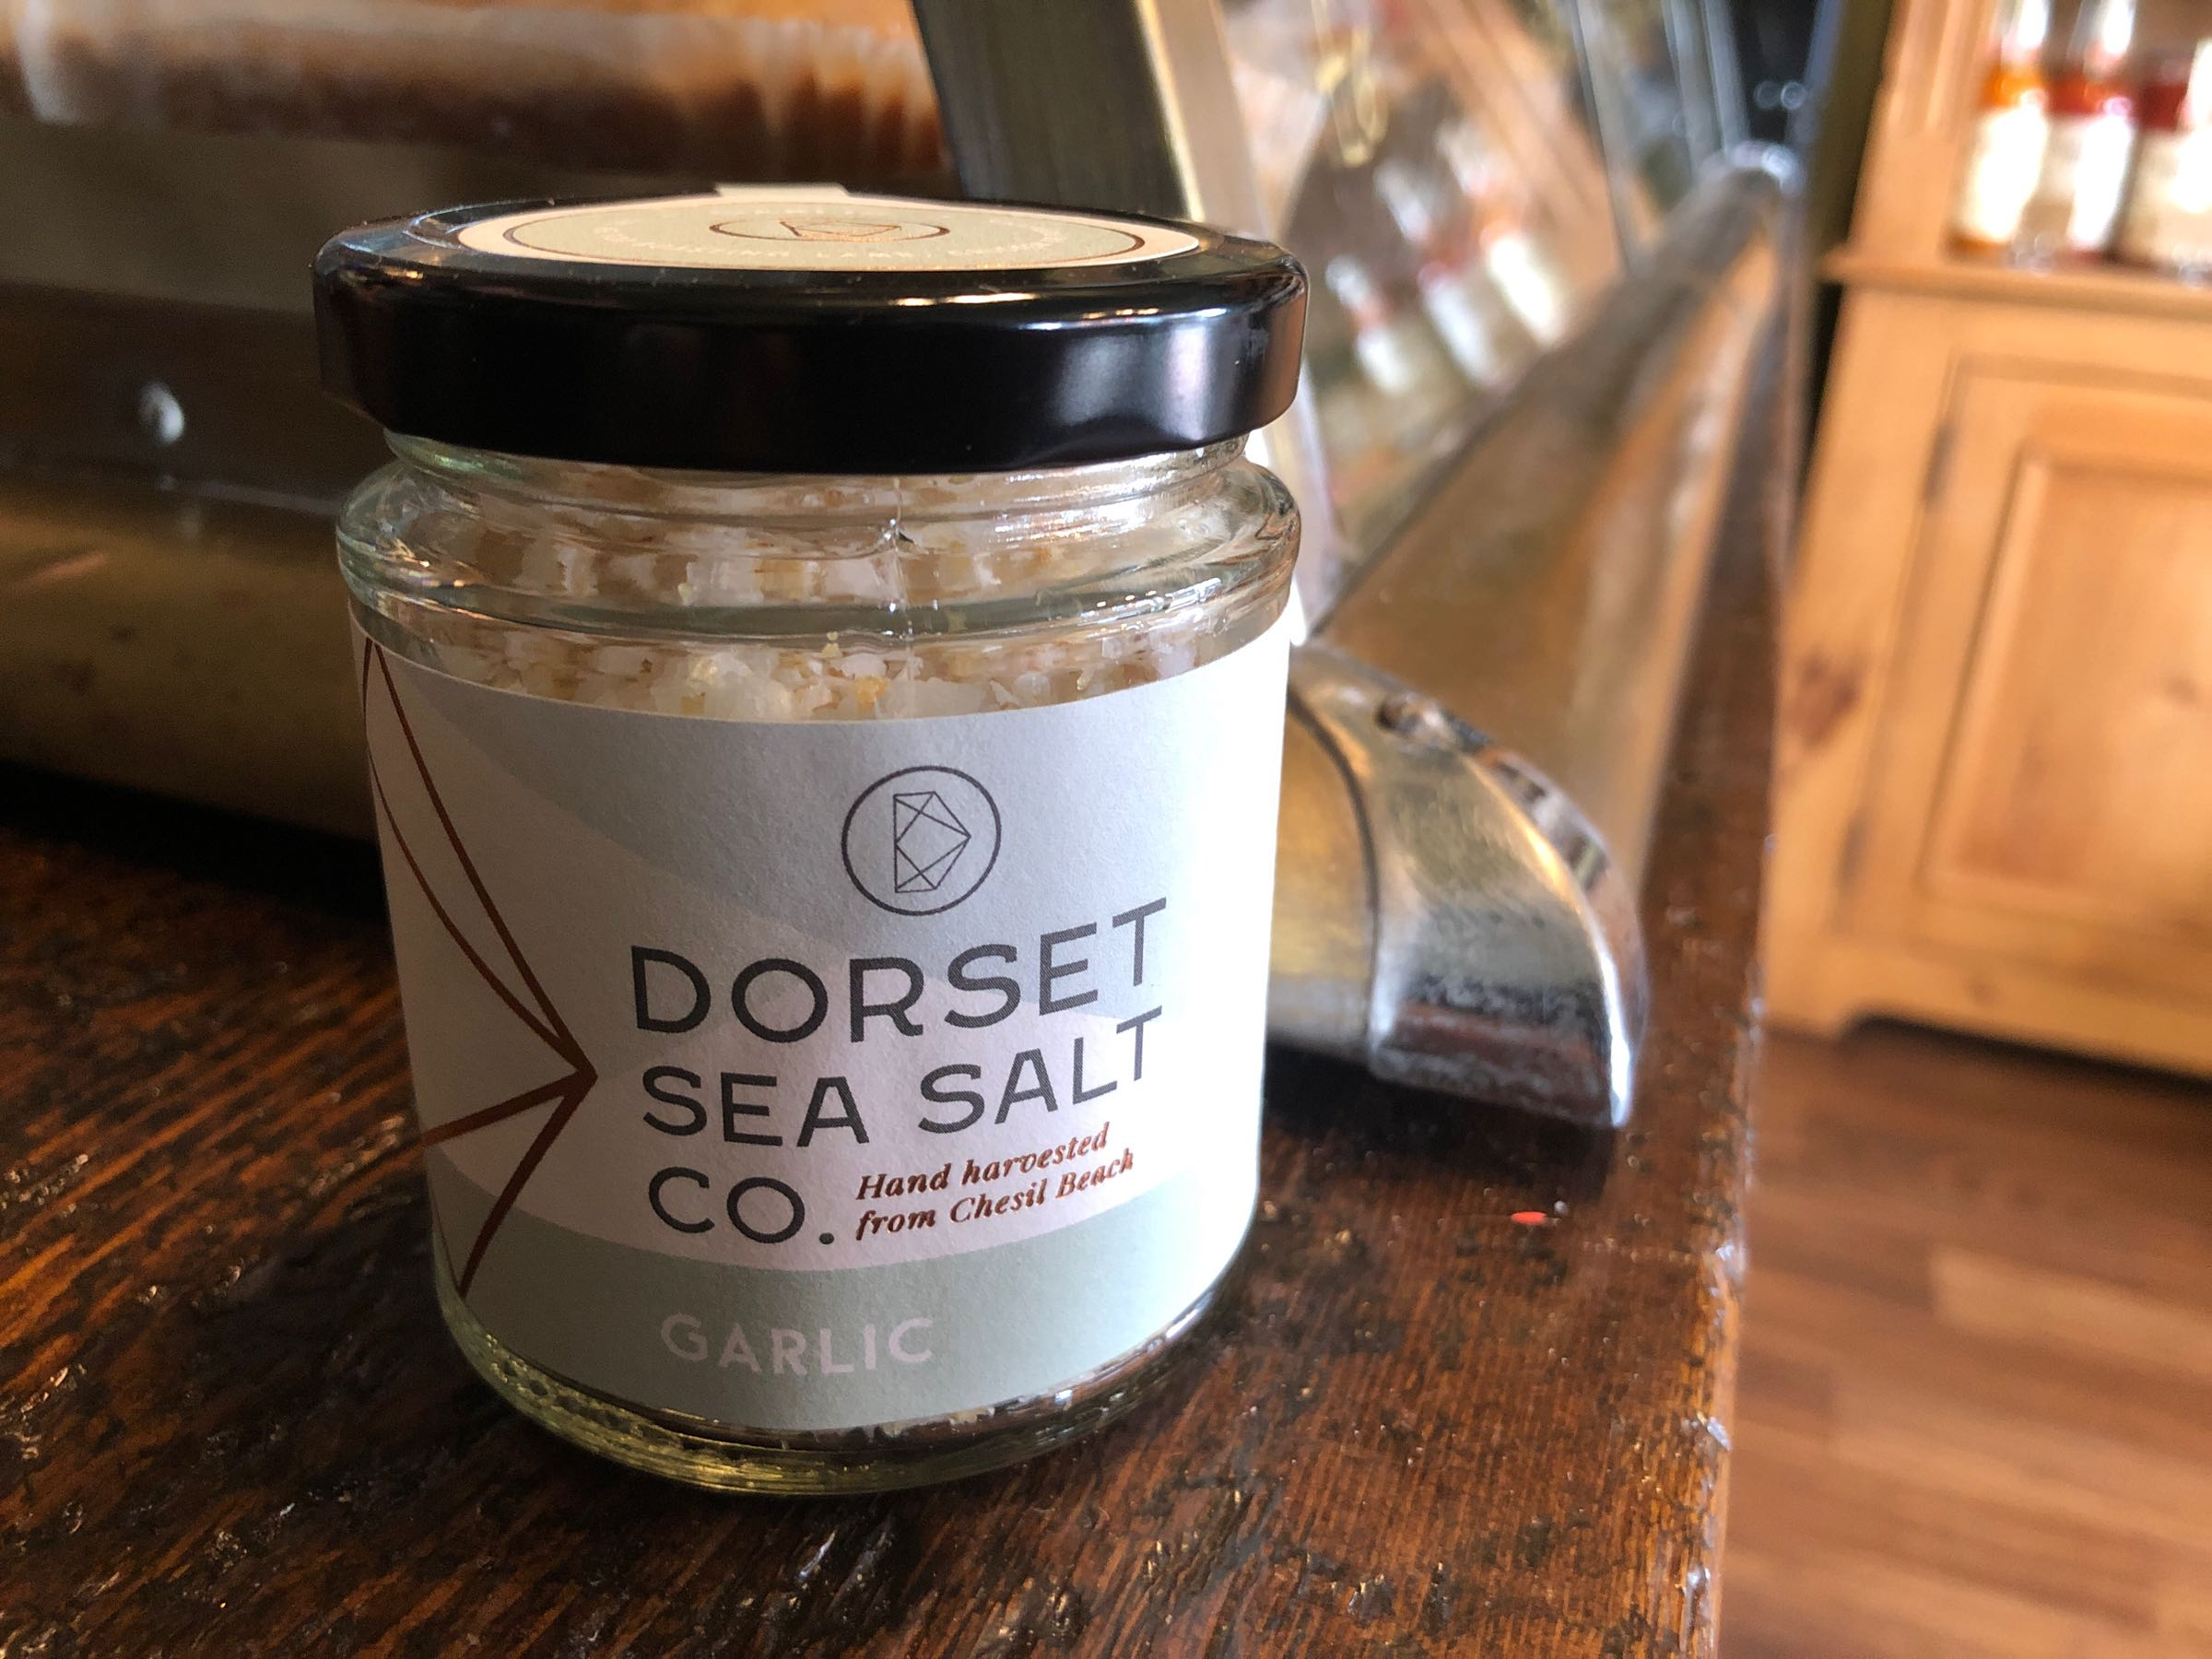 Dorset Sea Salt 125g Jar Garlic Dorset Sea